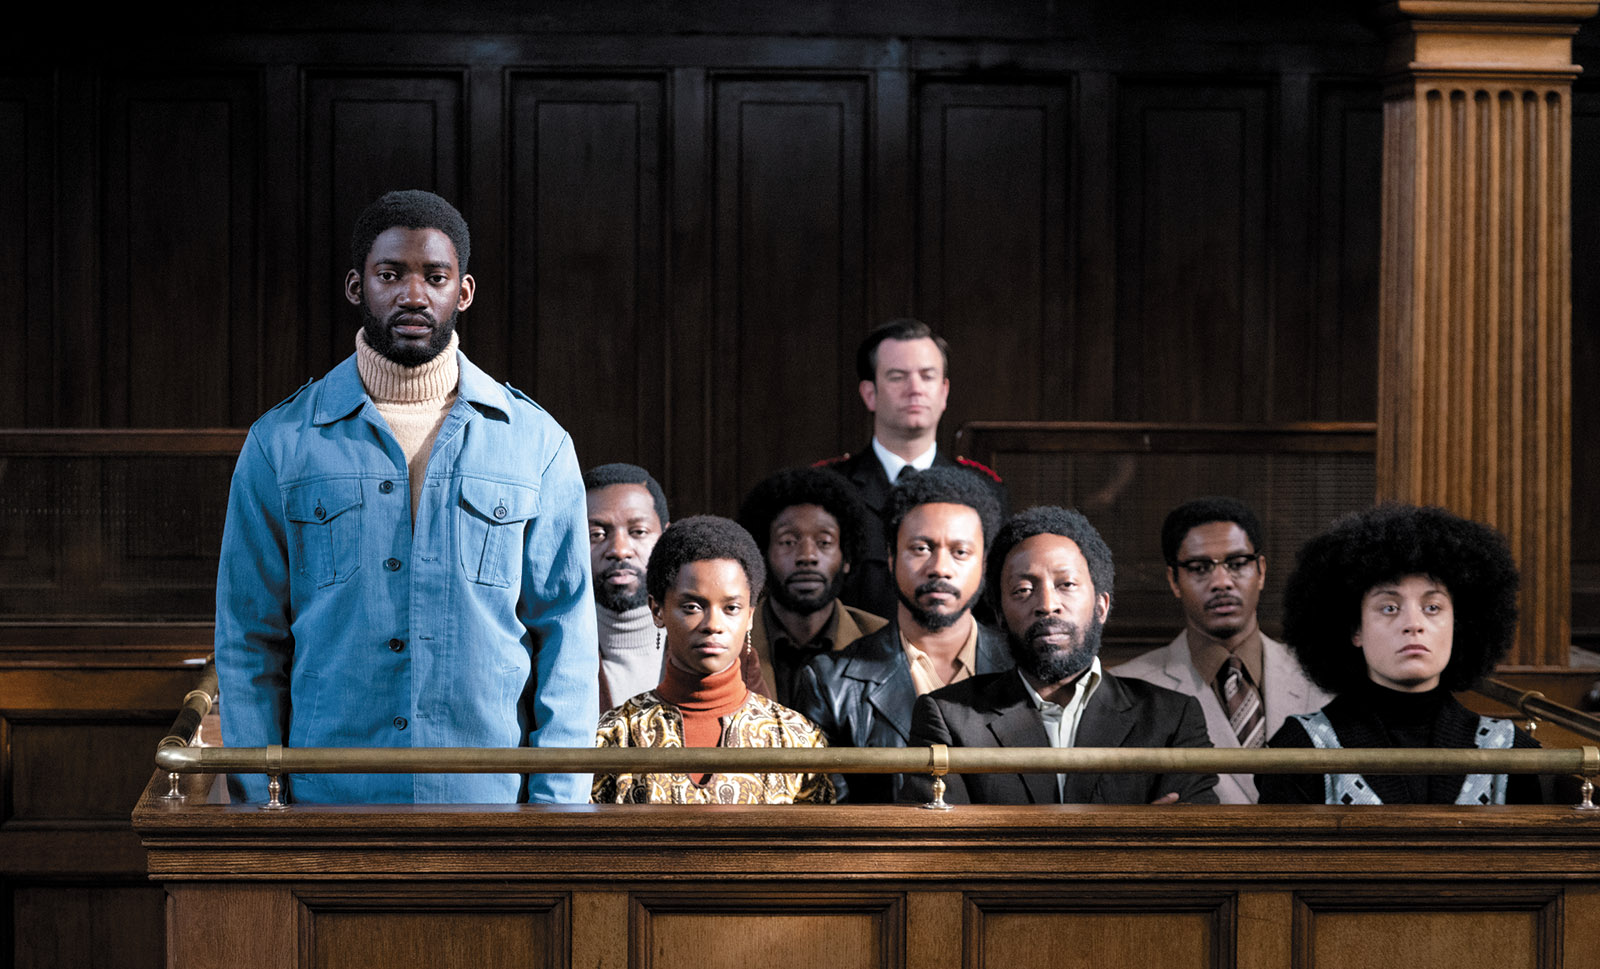 Malachi Kirby as activist Darcus Howe, on trial with the other members of the Mangrove Nine; from Small Axe: Mangrove